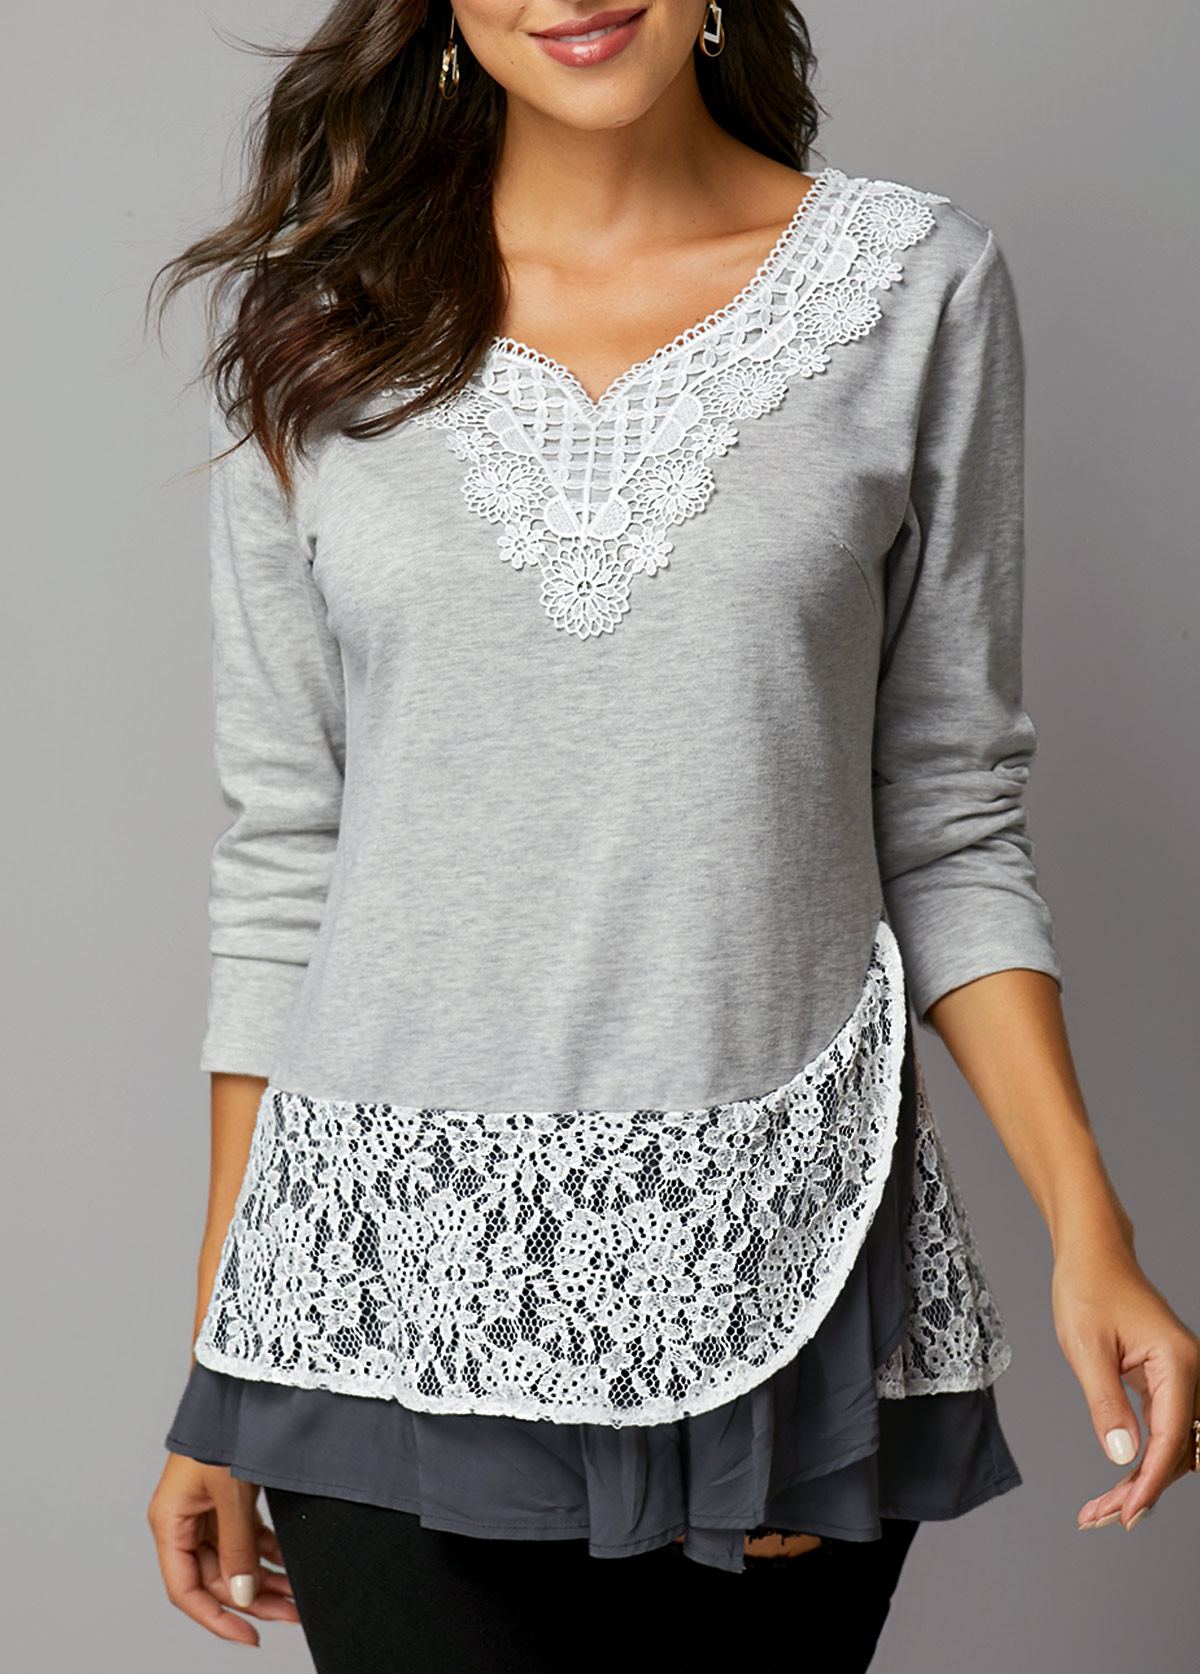 Lace Panel Light Grey Layered Hem T Shirt